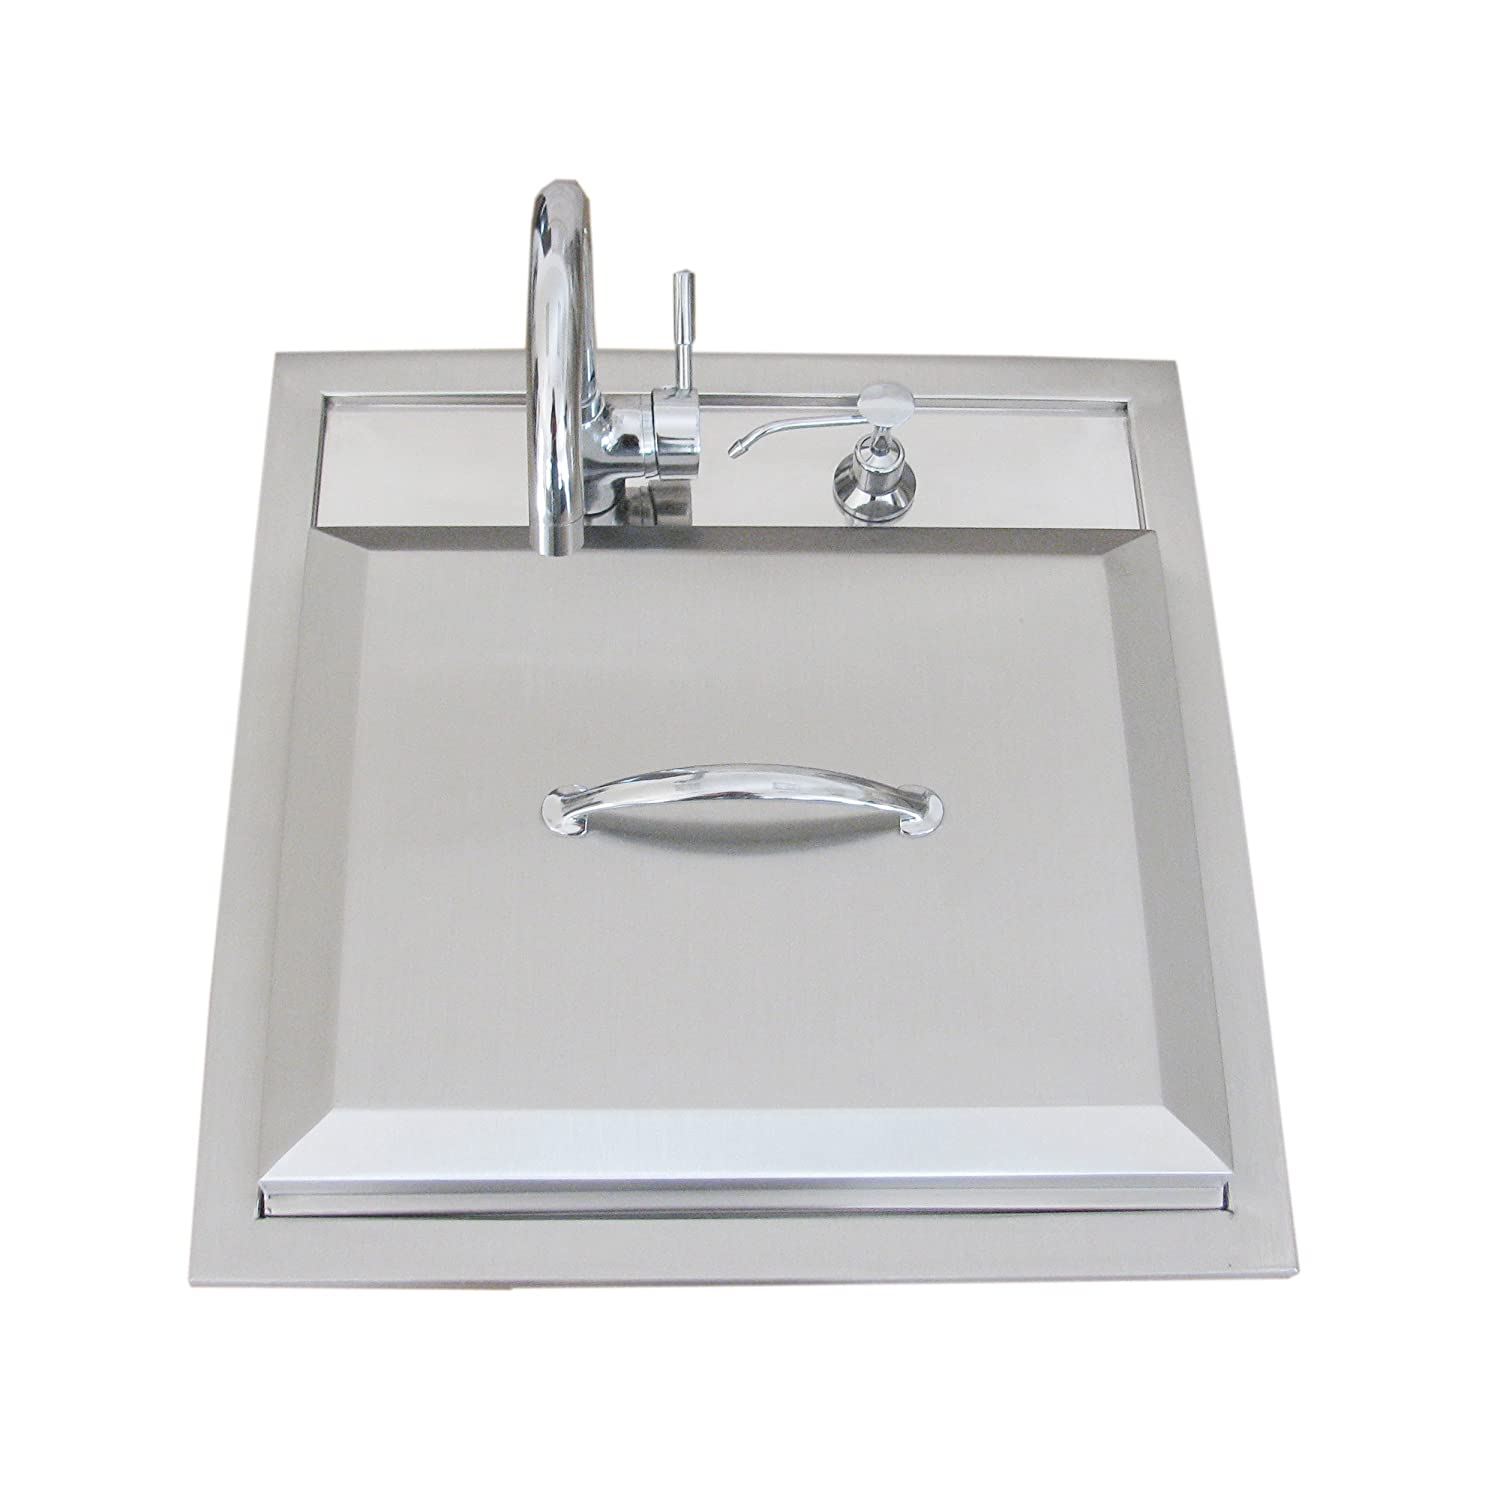 Hot and cold water faucet for outdoor sink - Amazon Com Sunstone A Ps21 Premium Sink With Hot Cold Water Facet And Cutting Board Discontinued By Manufacturer Outdoor Kitchen Cutting Boards